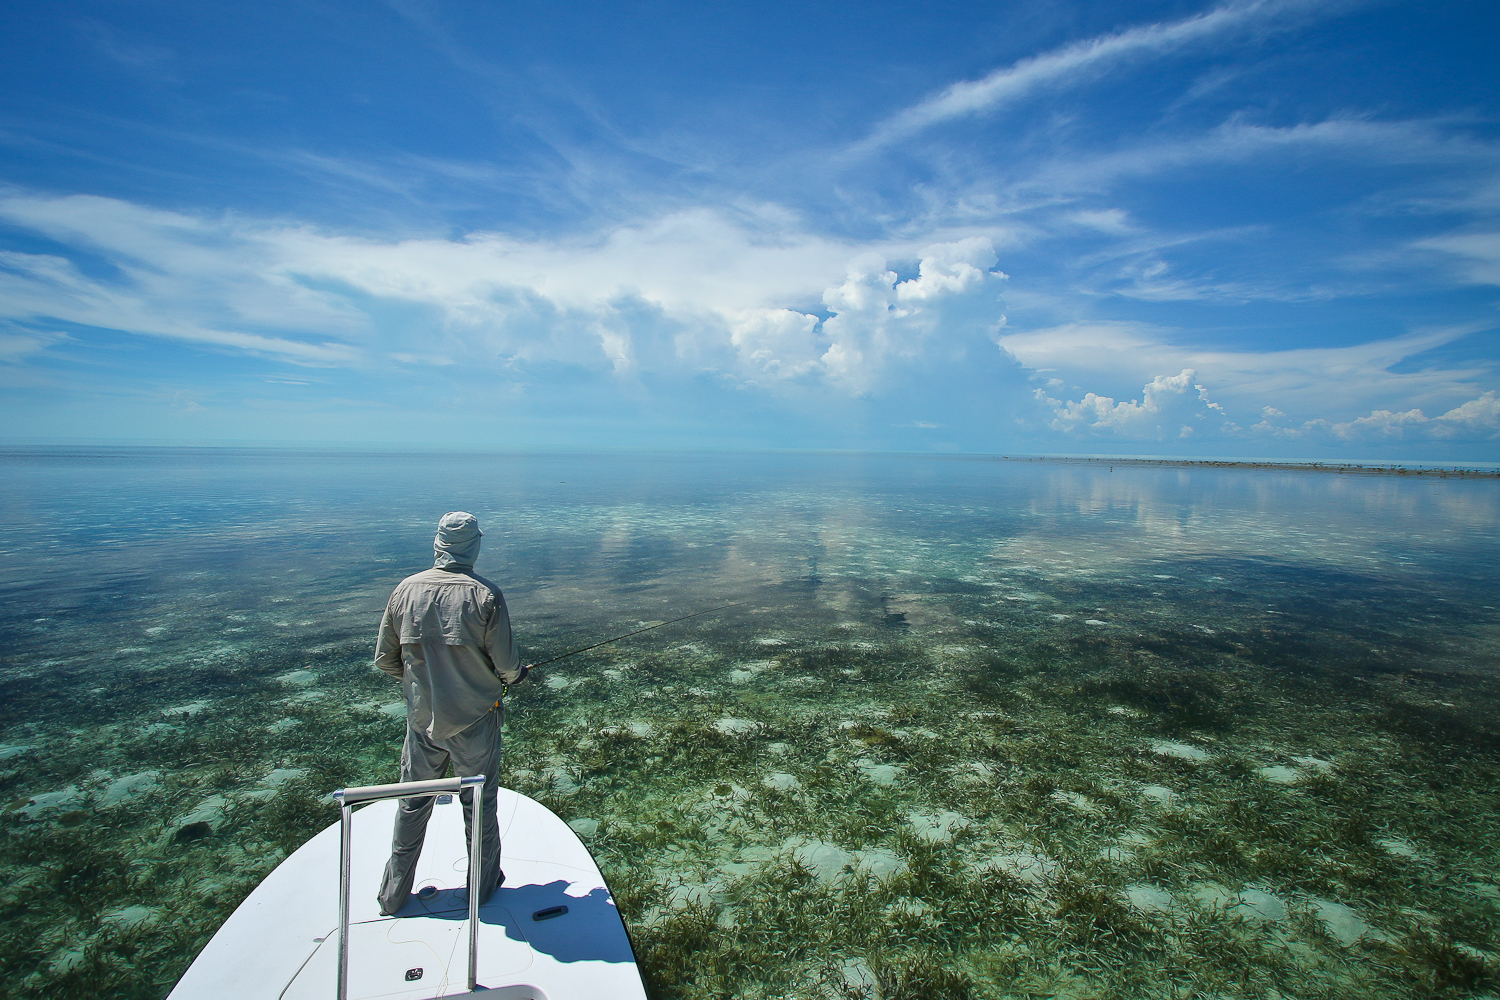 The immense eastern Bonefish/Permit flats